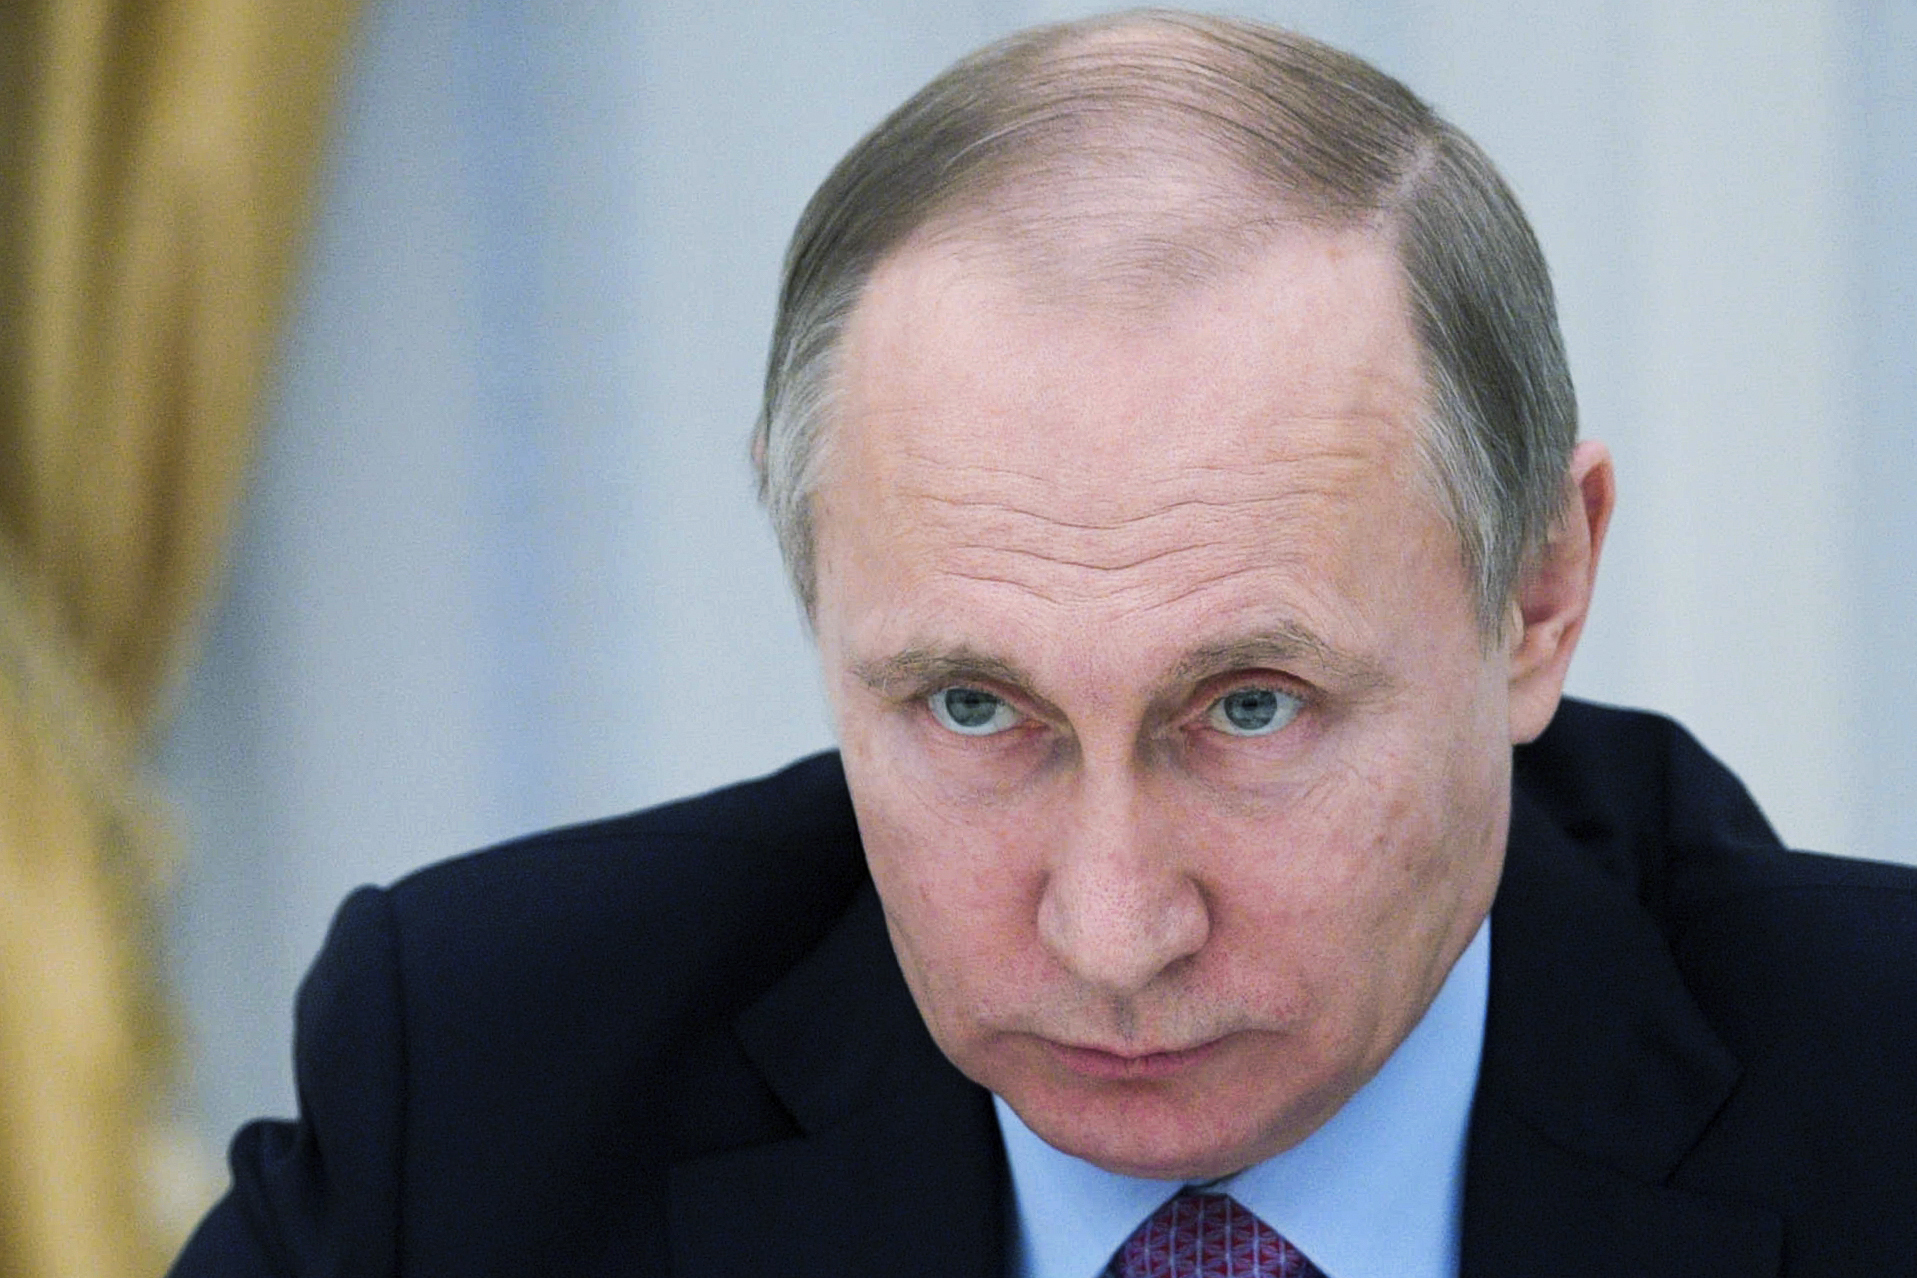 Researchers peg Putin as a plagiarist over thesis